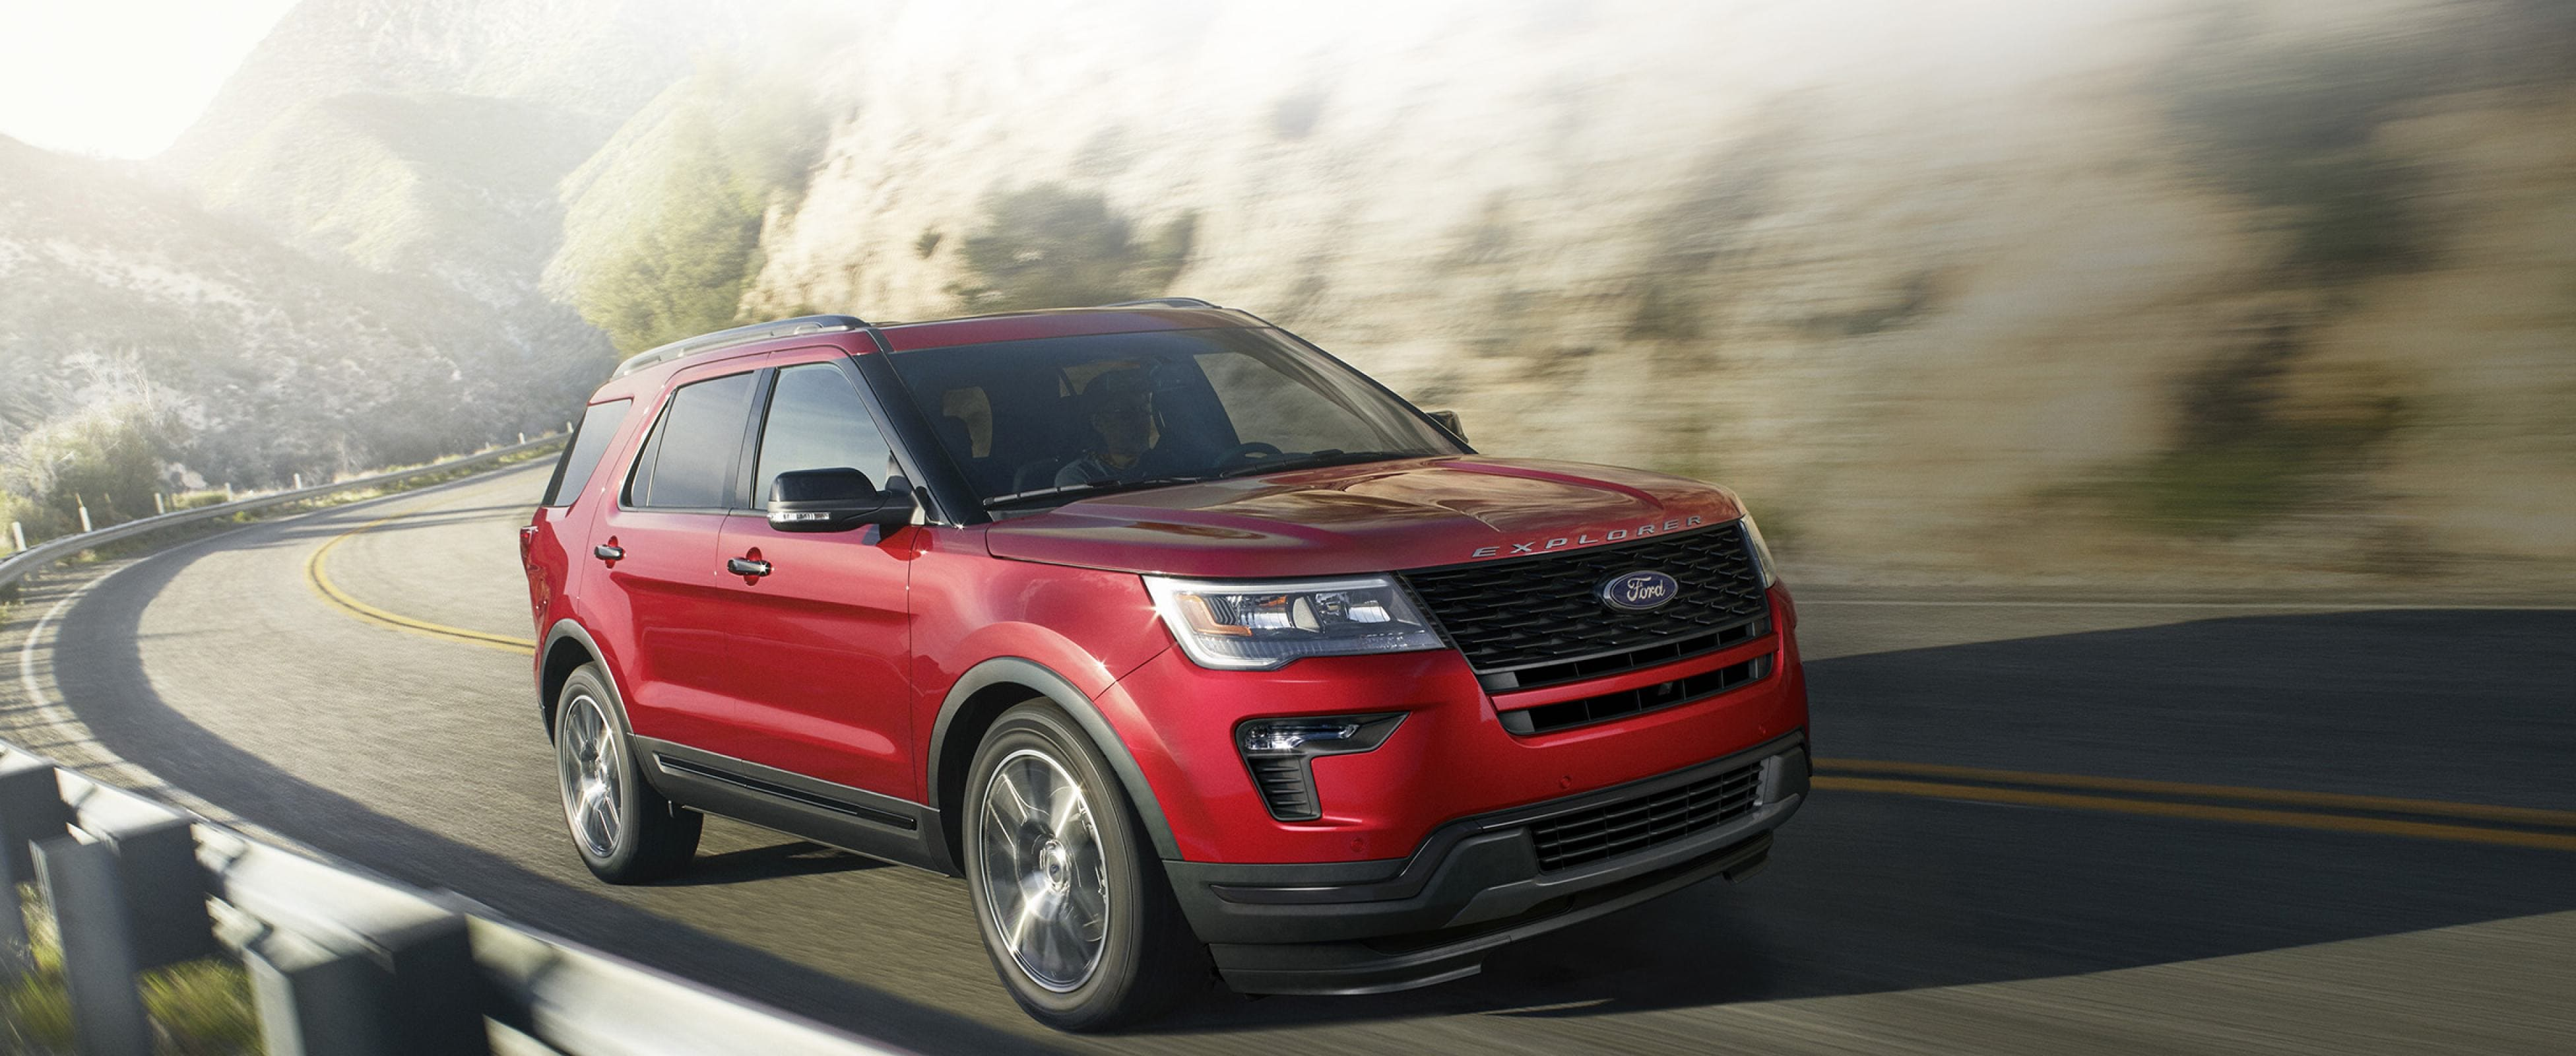 Save On 7-Passenger SUV Rentals | Avis Rent a Car